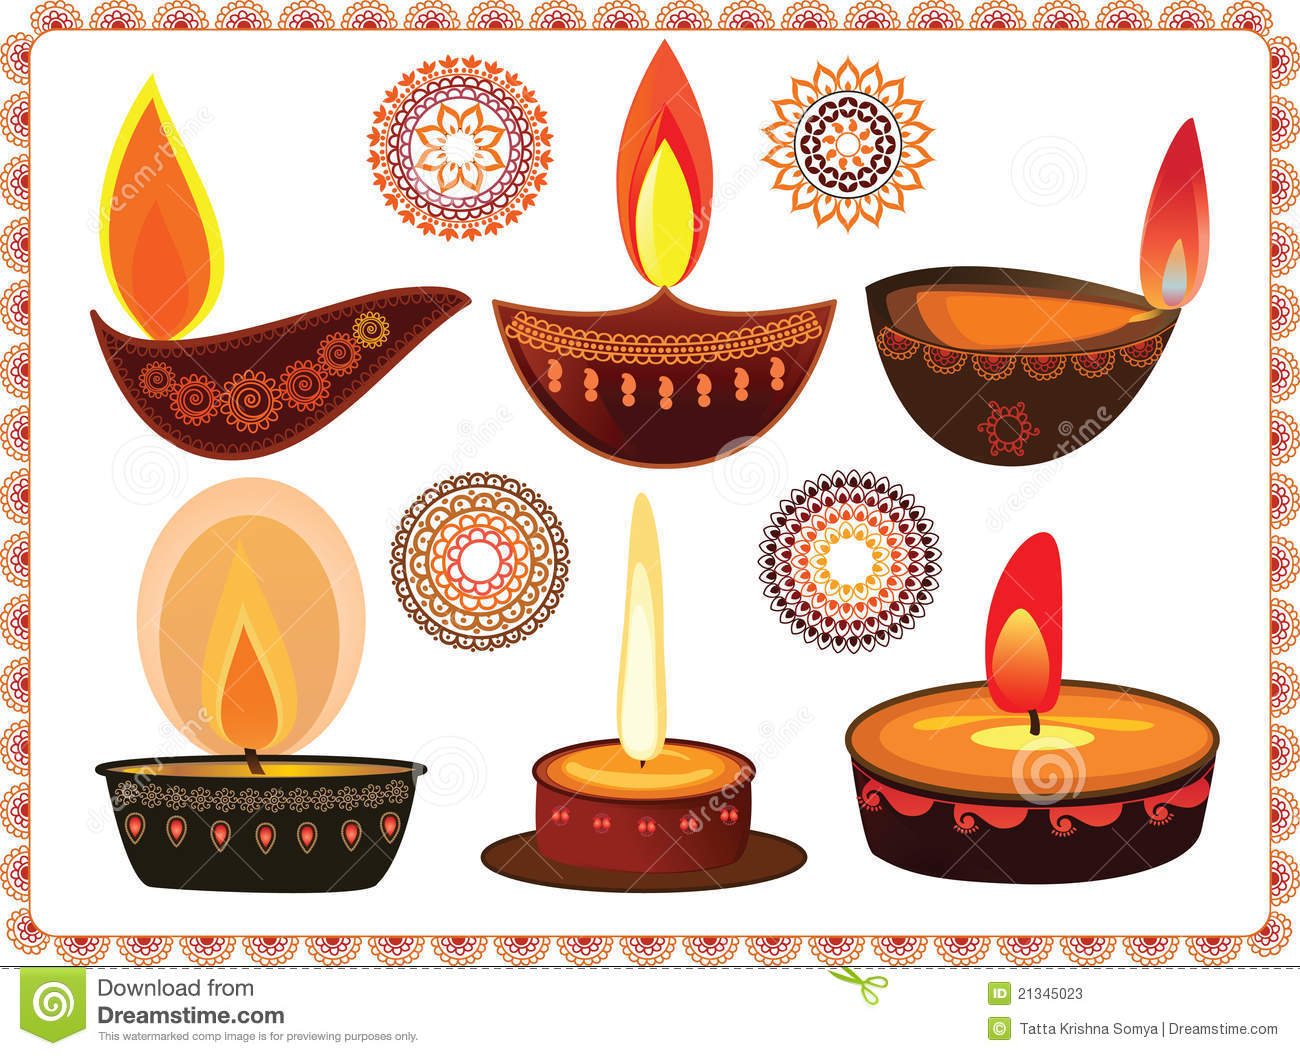 Diwali Oil Lamps With Mandala Design Stock Photos - Image ...